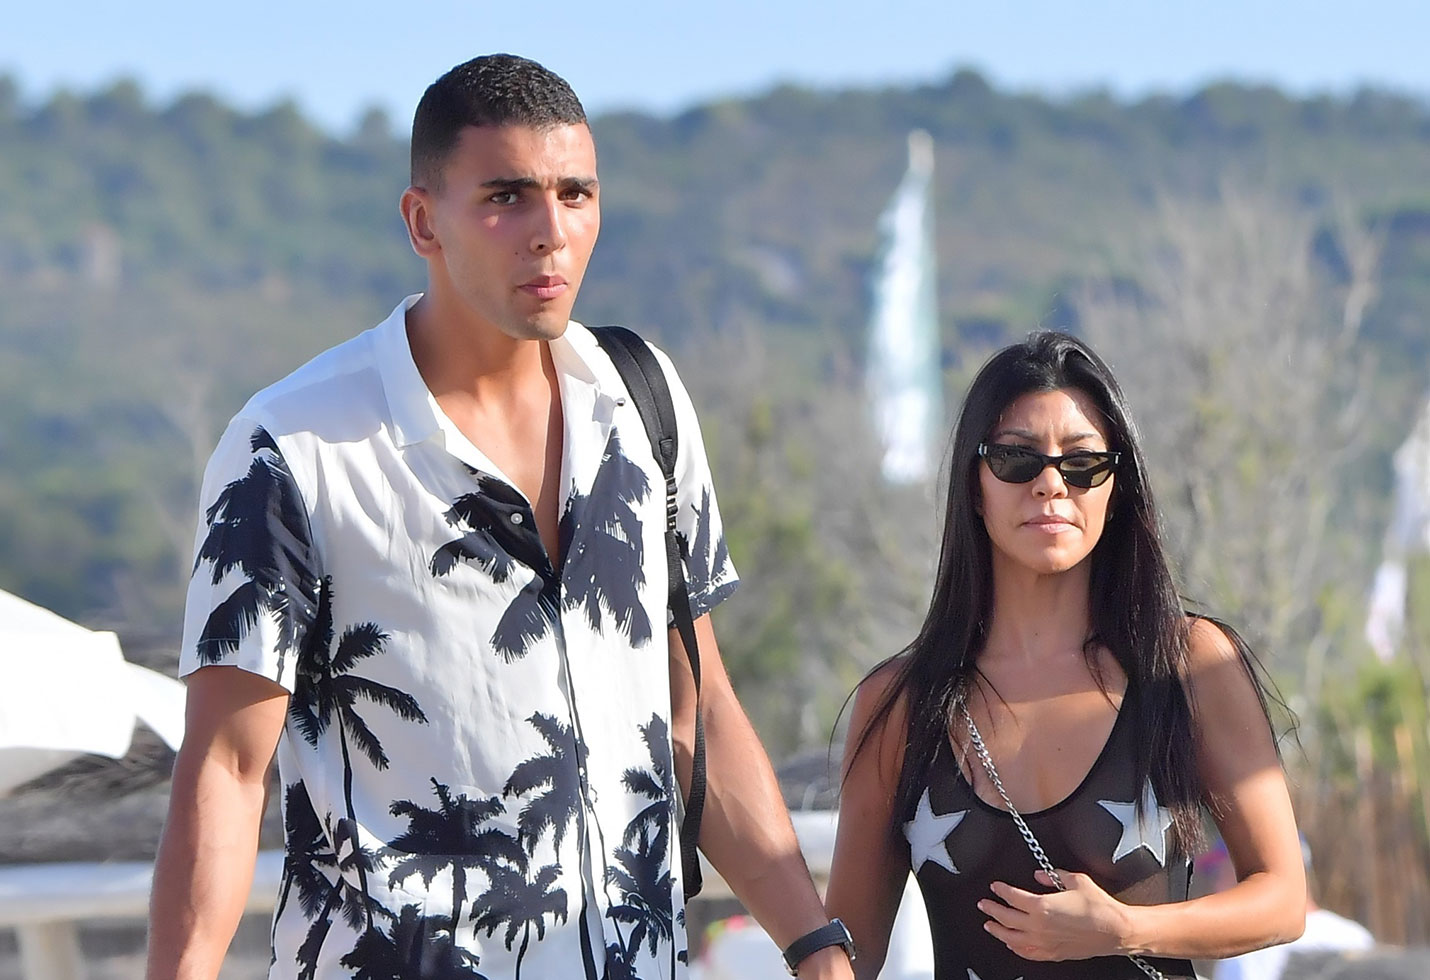 Kourtney kardashian camel toe butt wedgie younes bendjima